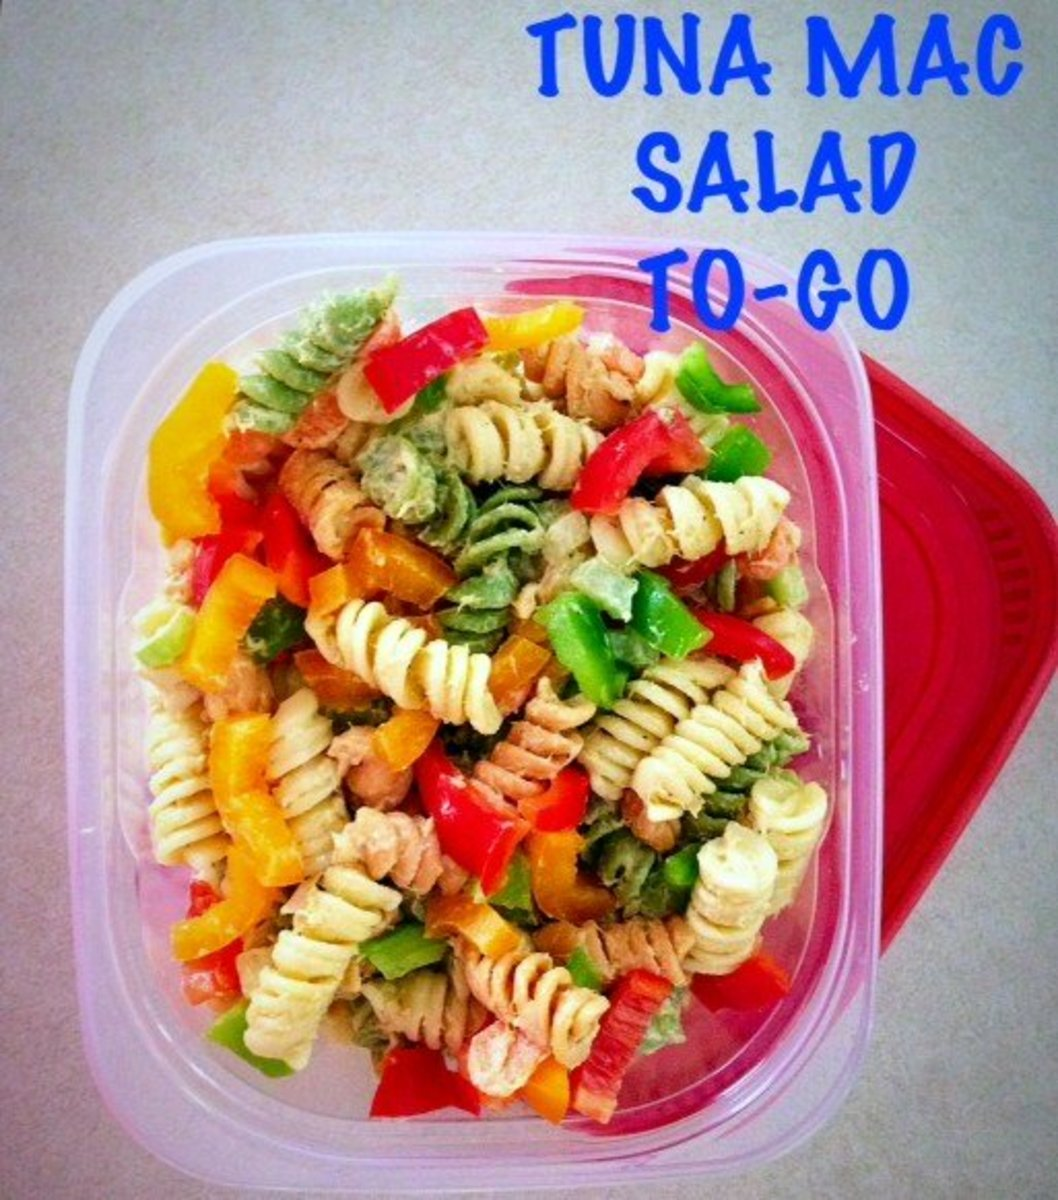 Tuna Mac Salad with chopped red, green and yellow peppers